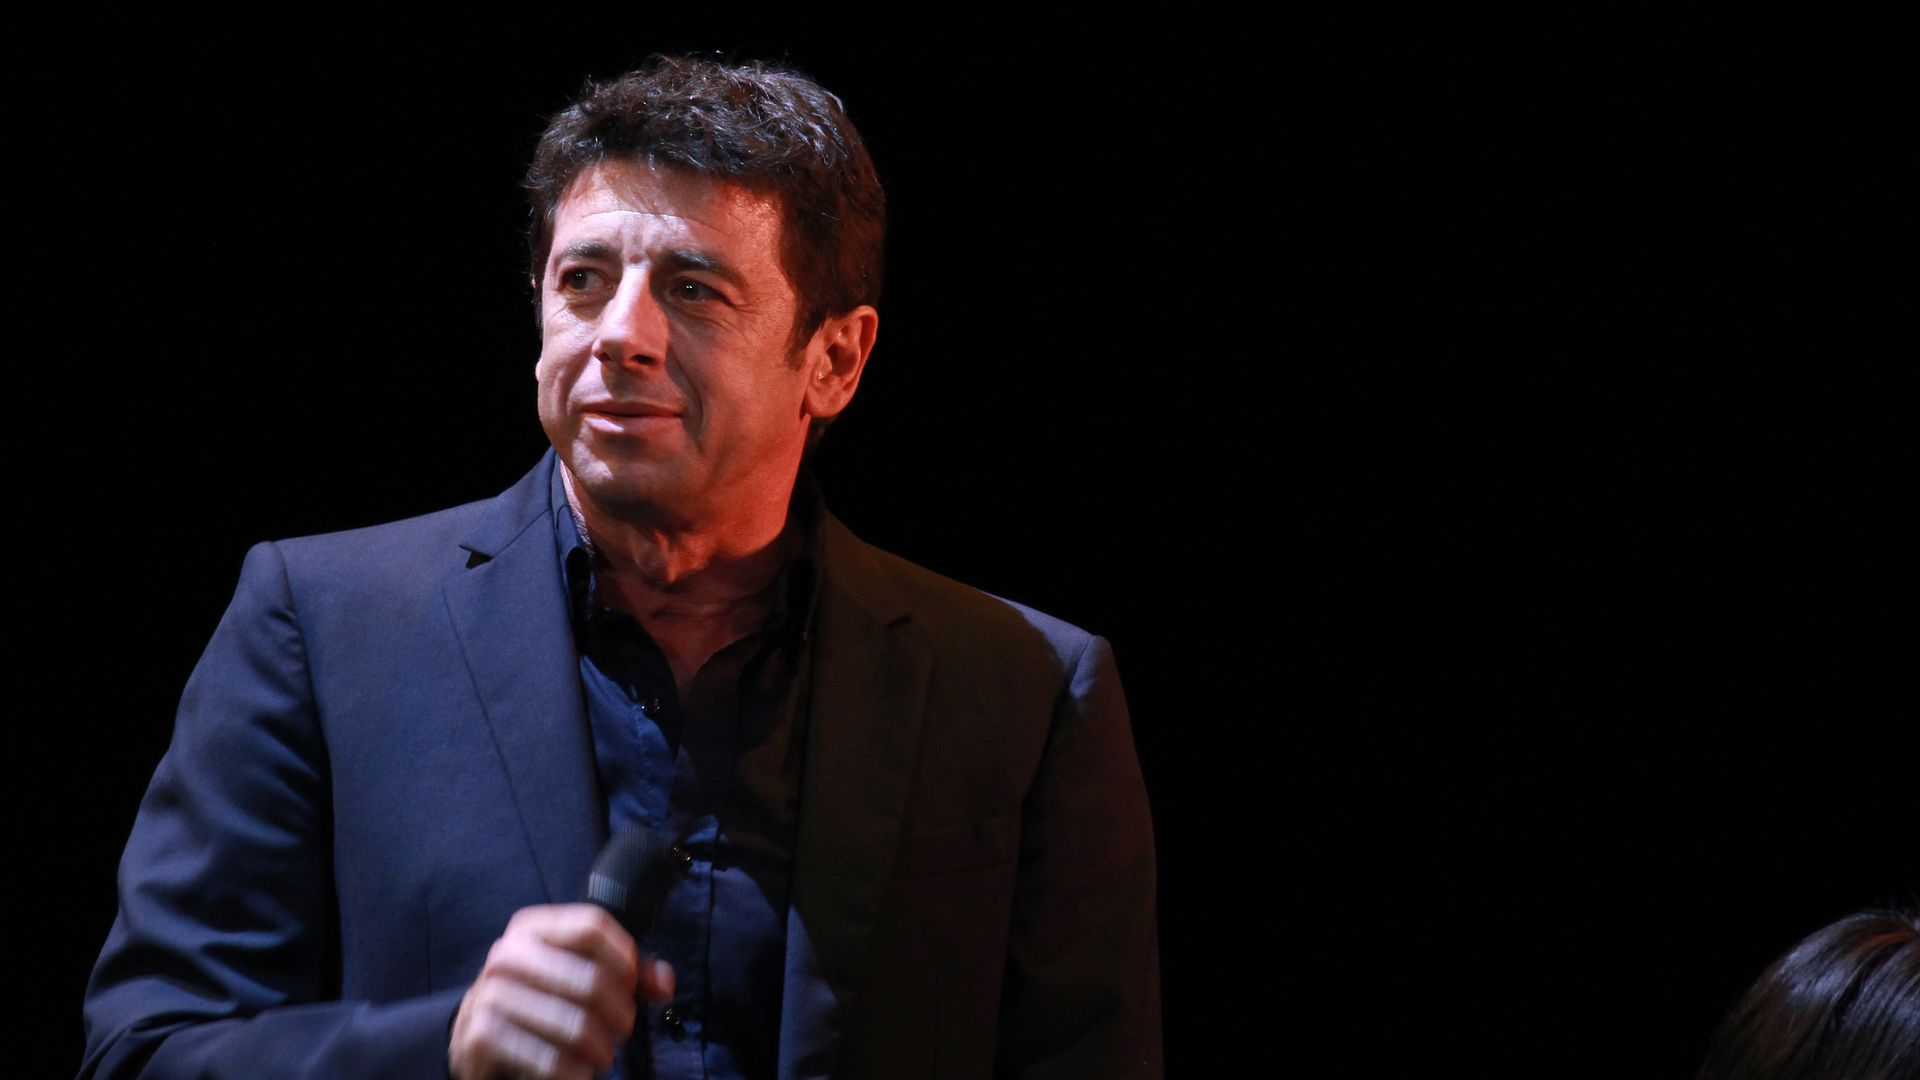 Patrick Bruel Background